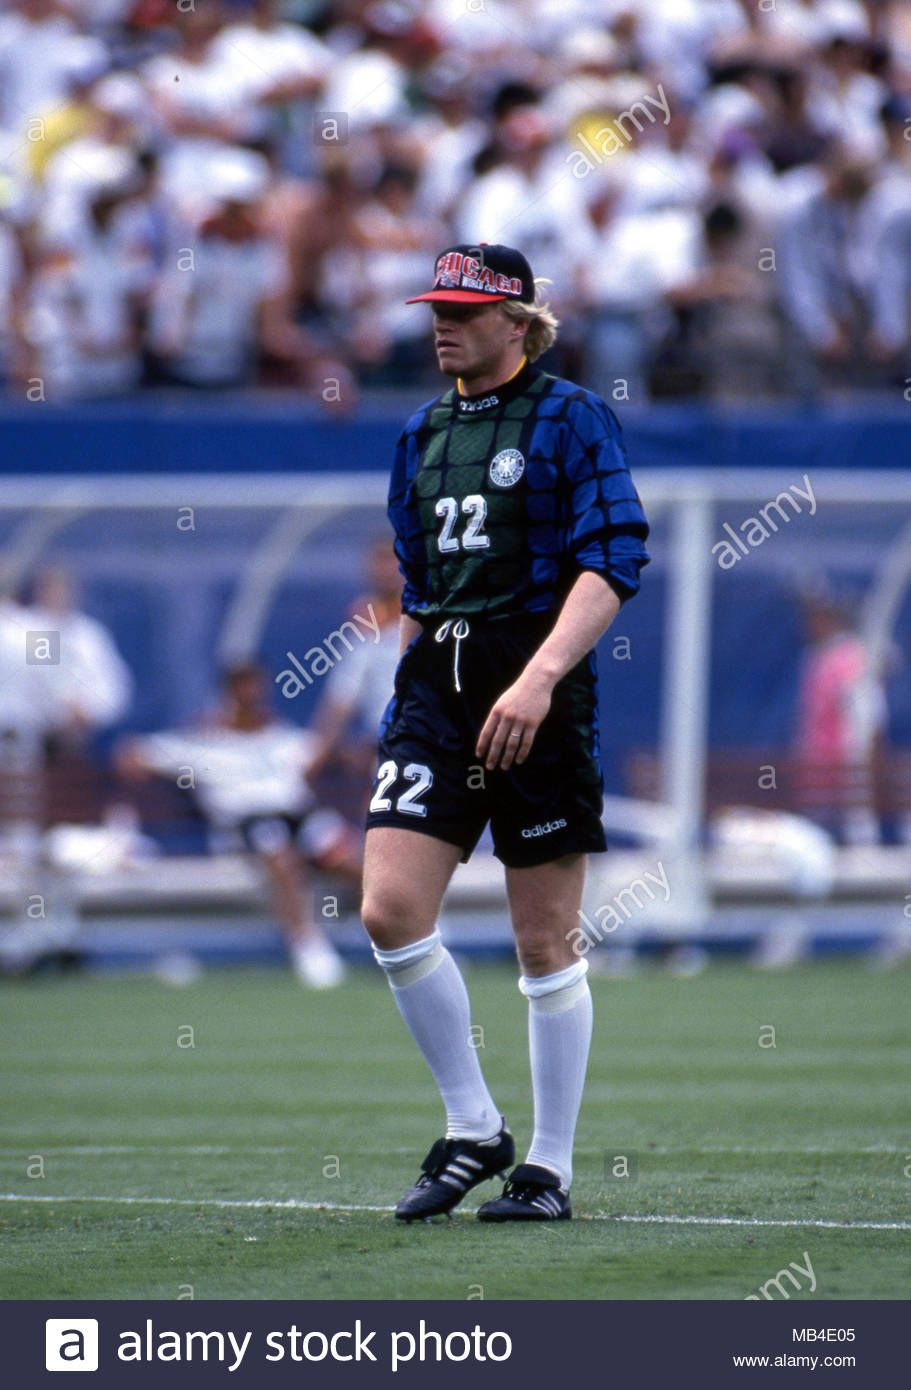 Download This Stock Image Fifa World Cup Usa 1994 10 7 1994 Giants Stadium New York New Jersey World Cup Quarter Goalkeeper Giants Stadium Fifa World Cup